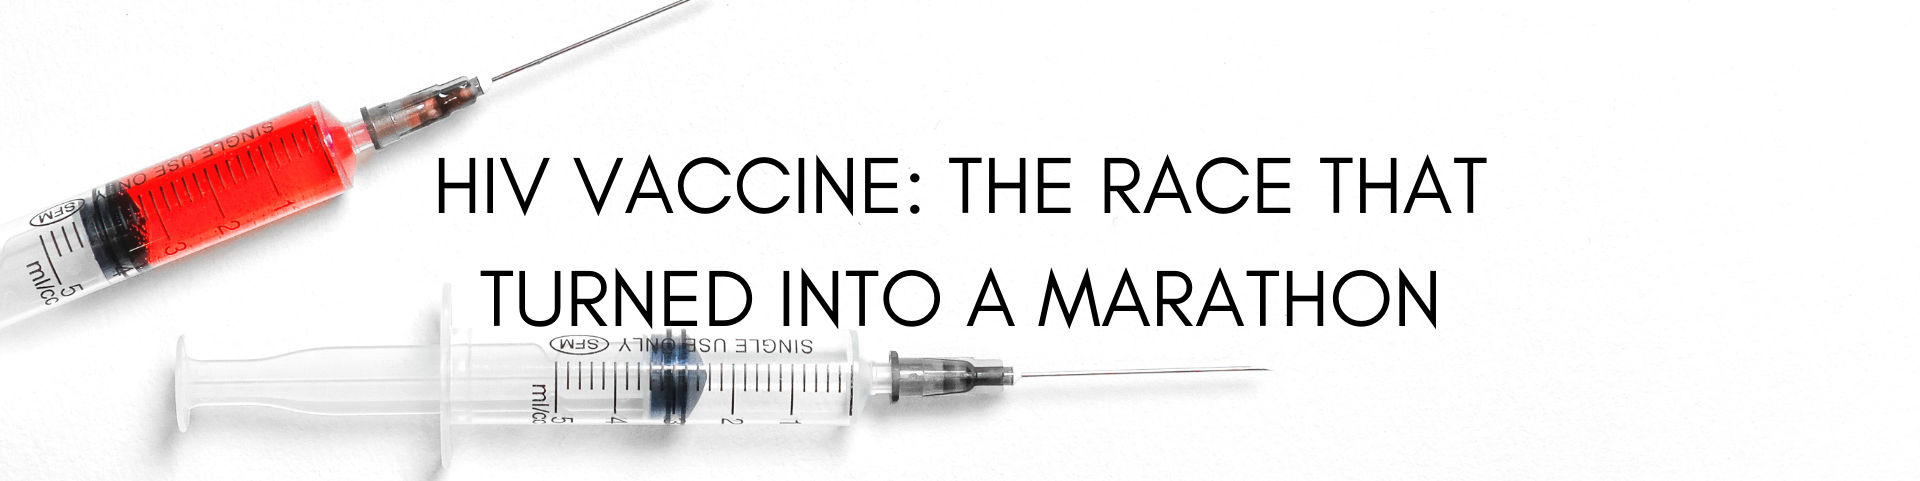 HIV Vaccine: The race that turned into a marathon